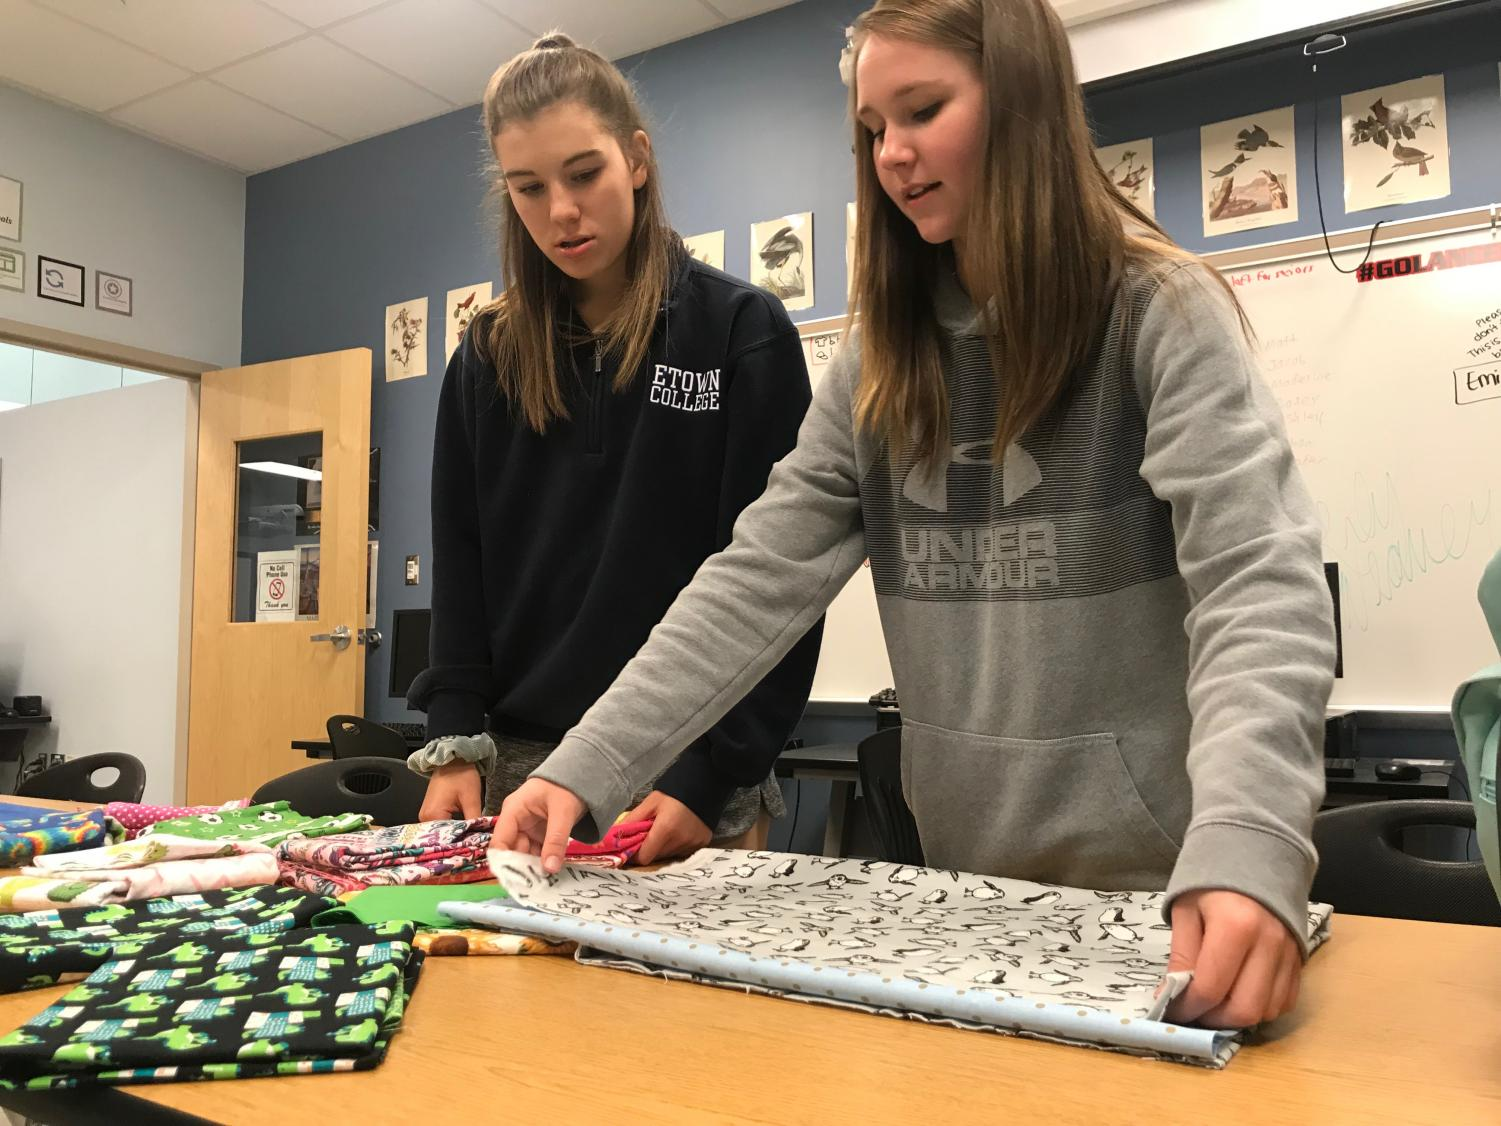 Elizabeth Rajnik and Sierra Rossman prepare the fabric for pillowcase assembly.